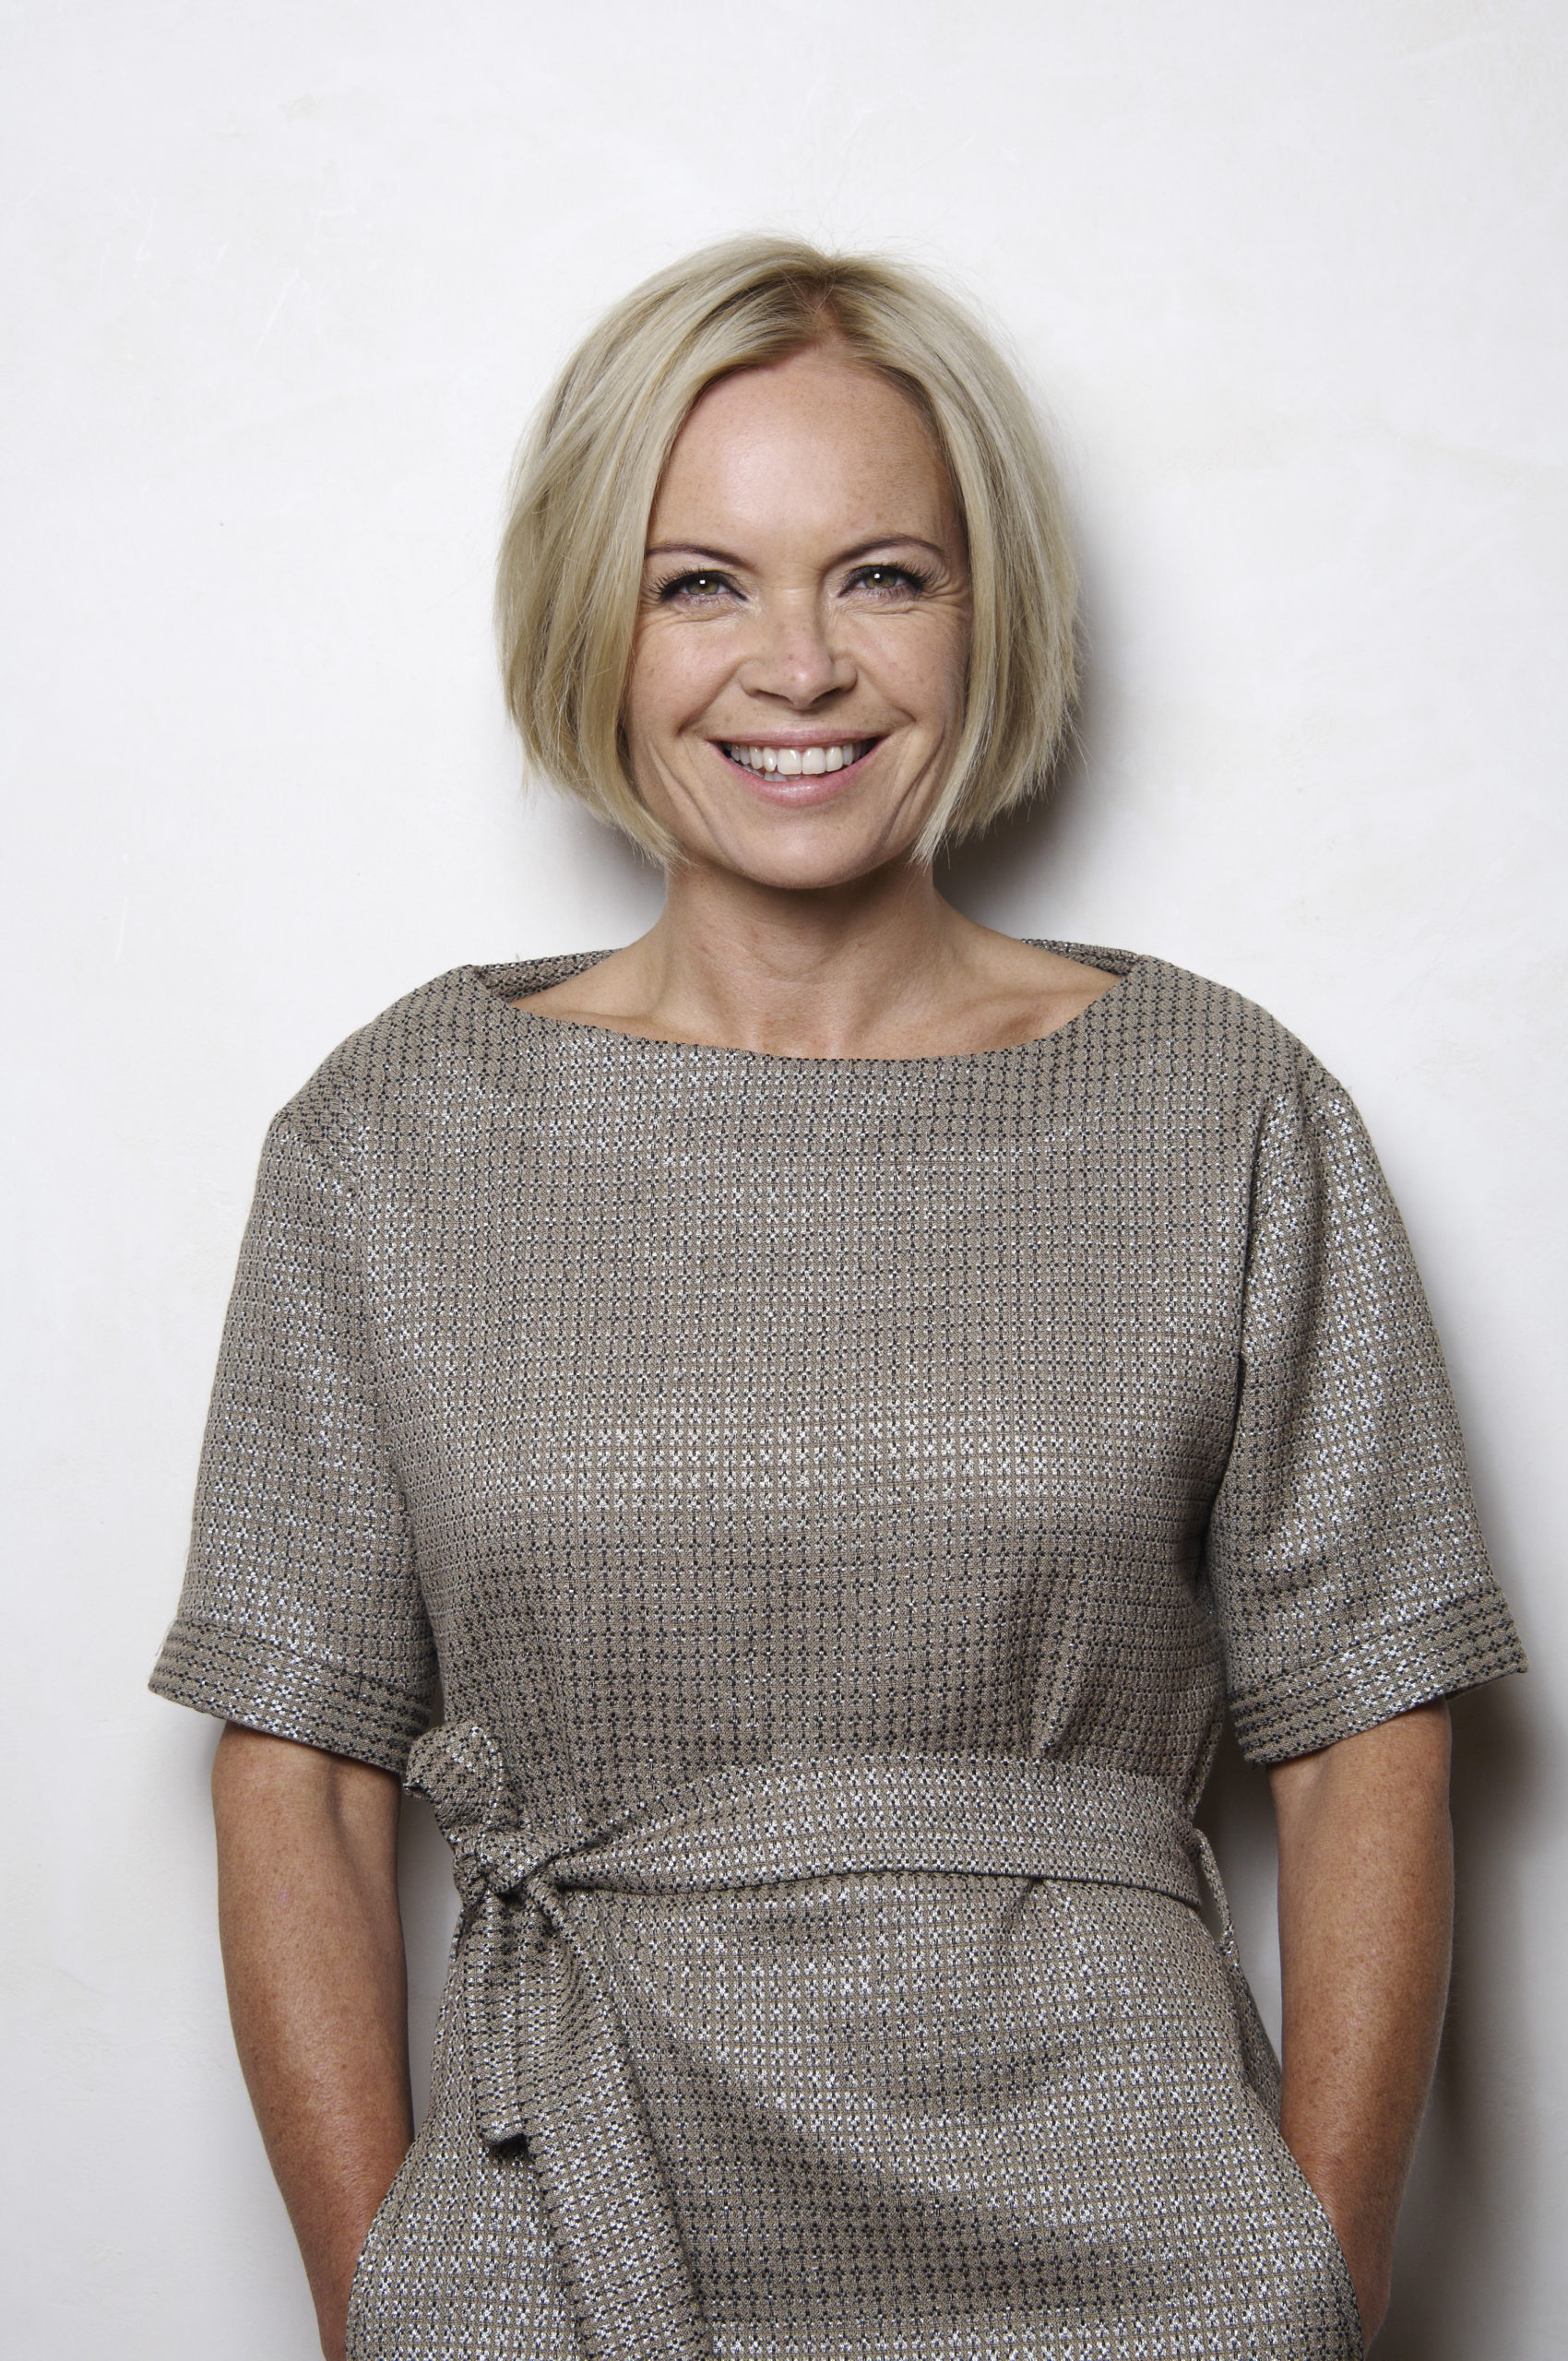 Law firm's new 'separation model' launched alongside Mariella Frostrup podcast